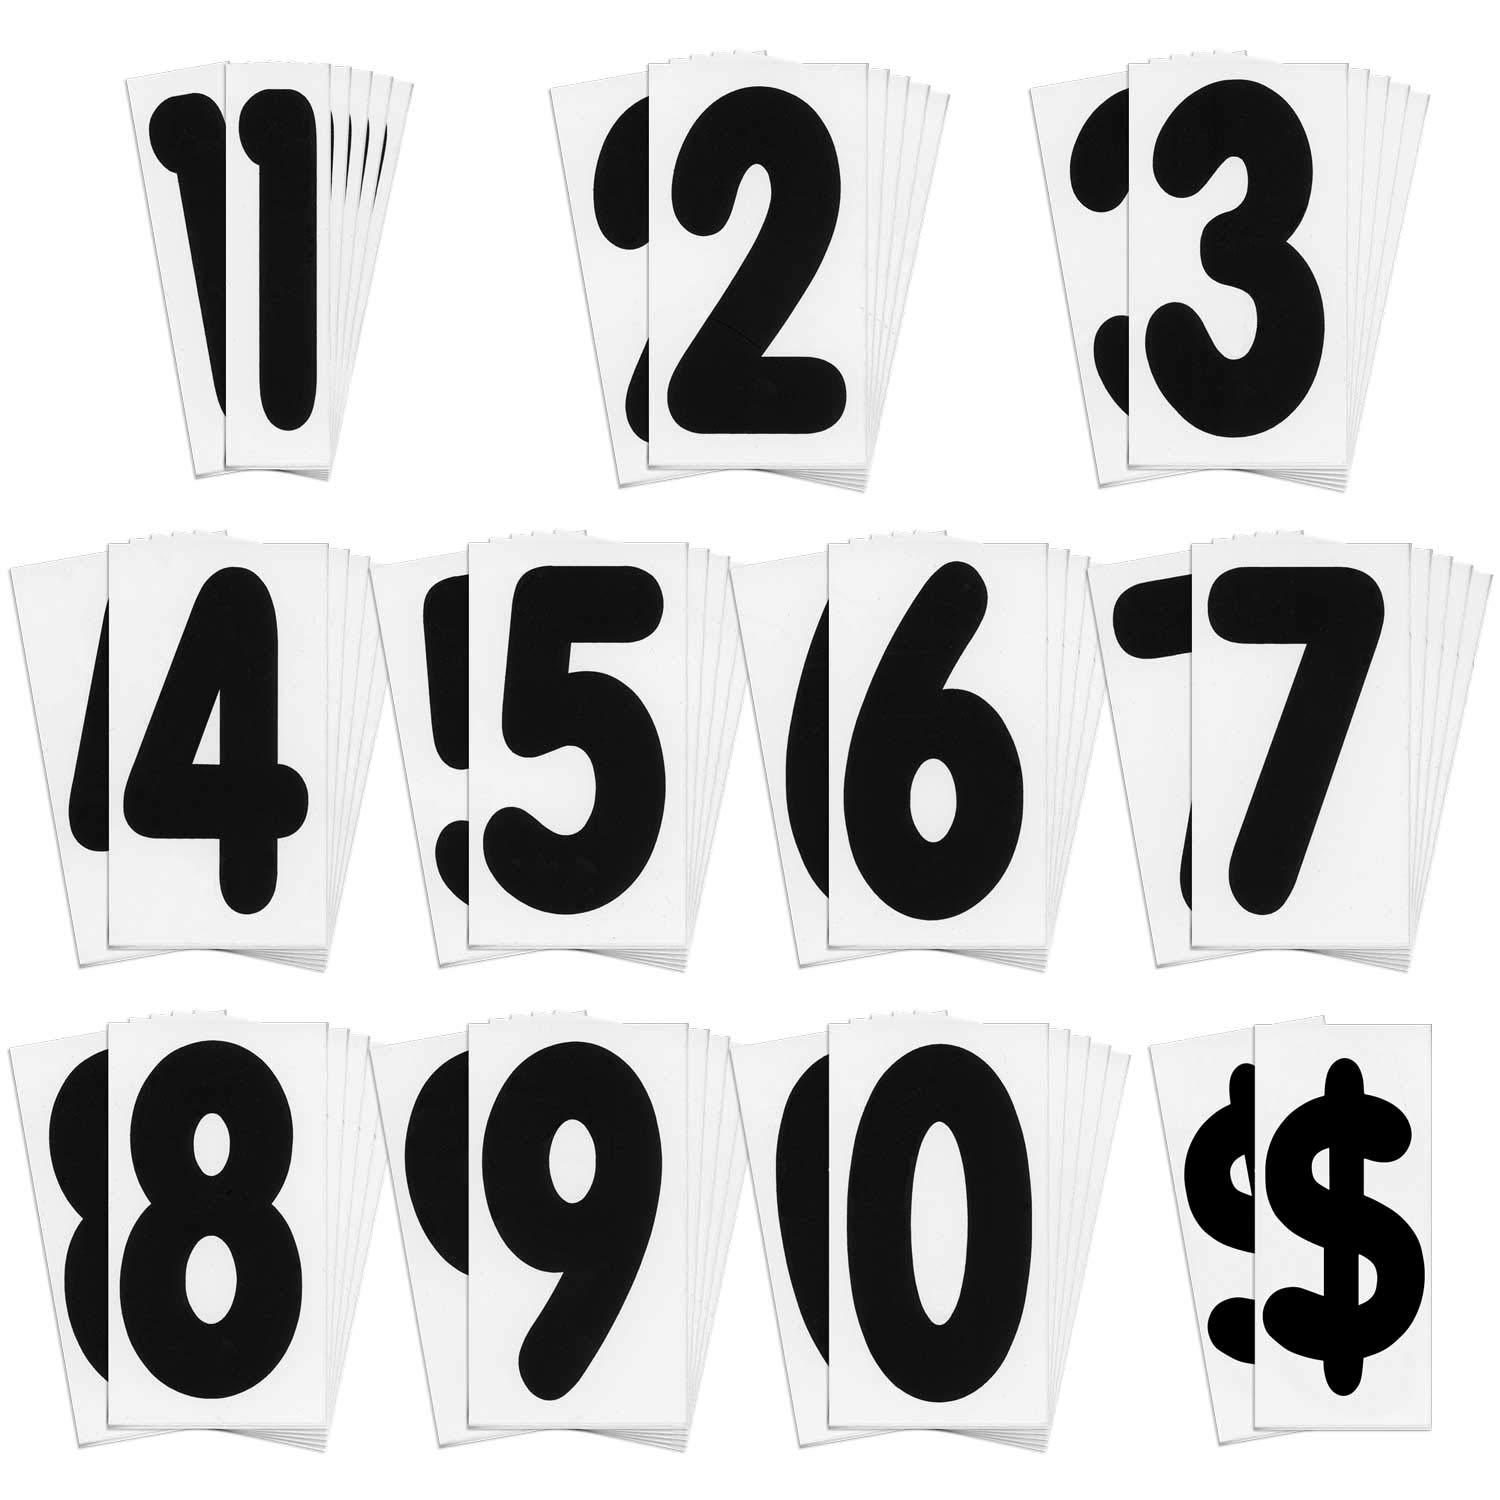 59dff4c3f1be Amazon.com : KitAbility Replacement Number Set for White Message Board  Sidewalk Signs with 4 Inch Tracks Includes 6 Each of Black Numbers 0 to 9 :  Office ...